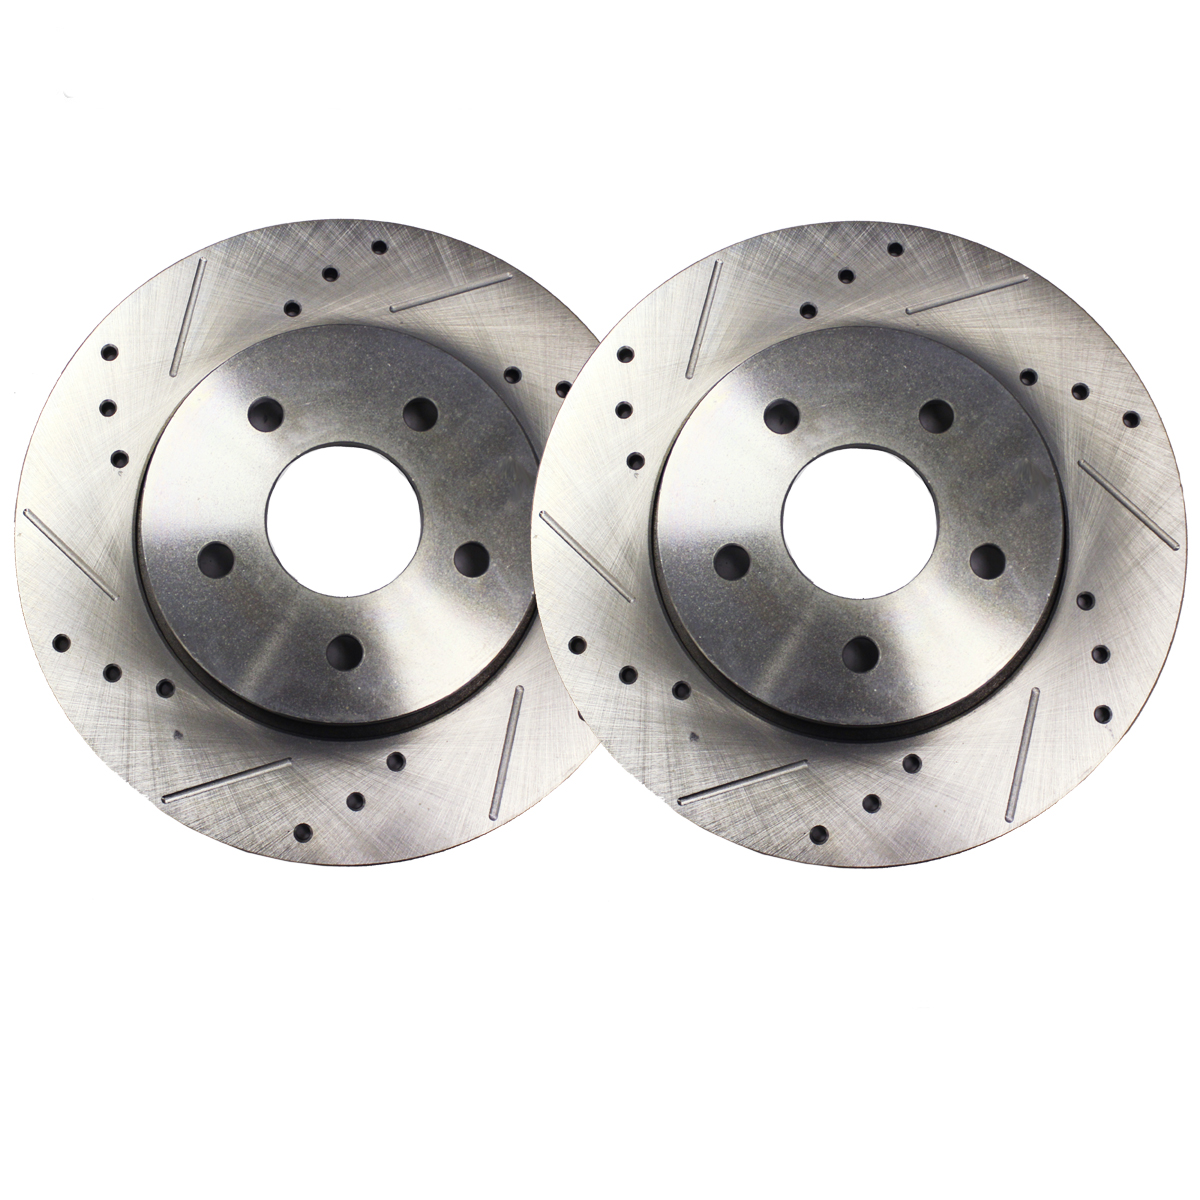 Front Drilled & Slotted Brake Rotors #S-31375-Infiniti & Nissan